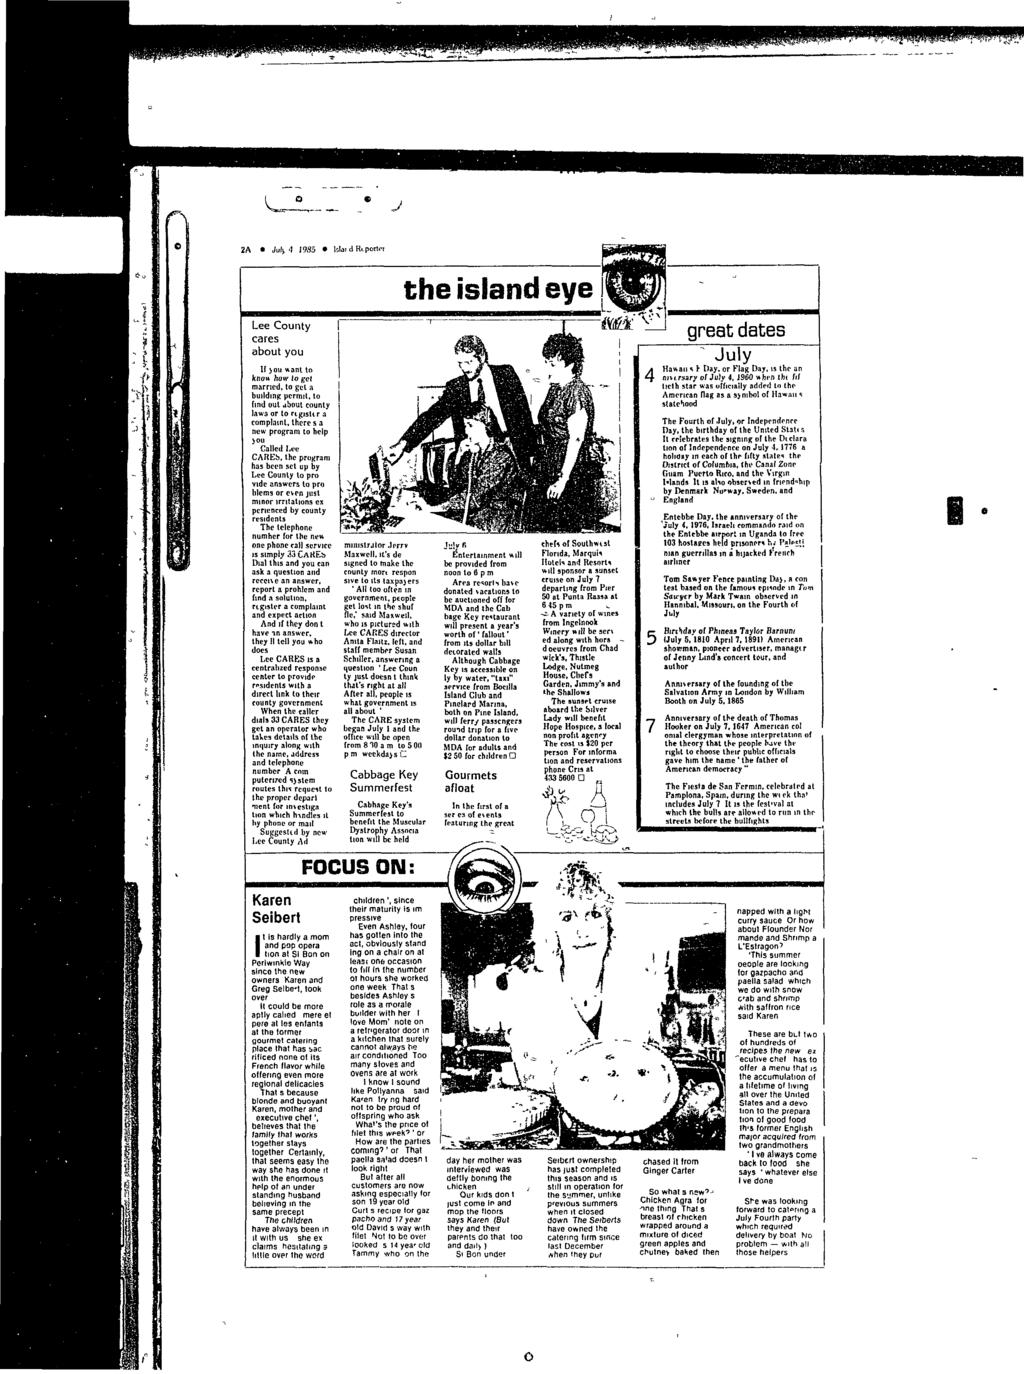 J 2A Jul> 4 1985 Islai d Riportft the island eye * I (V Lee County cares about you If joit want to know how to get married, to gel a building permit, to find out about county laws or to register a